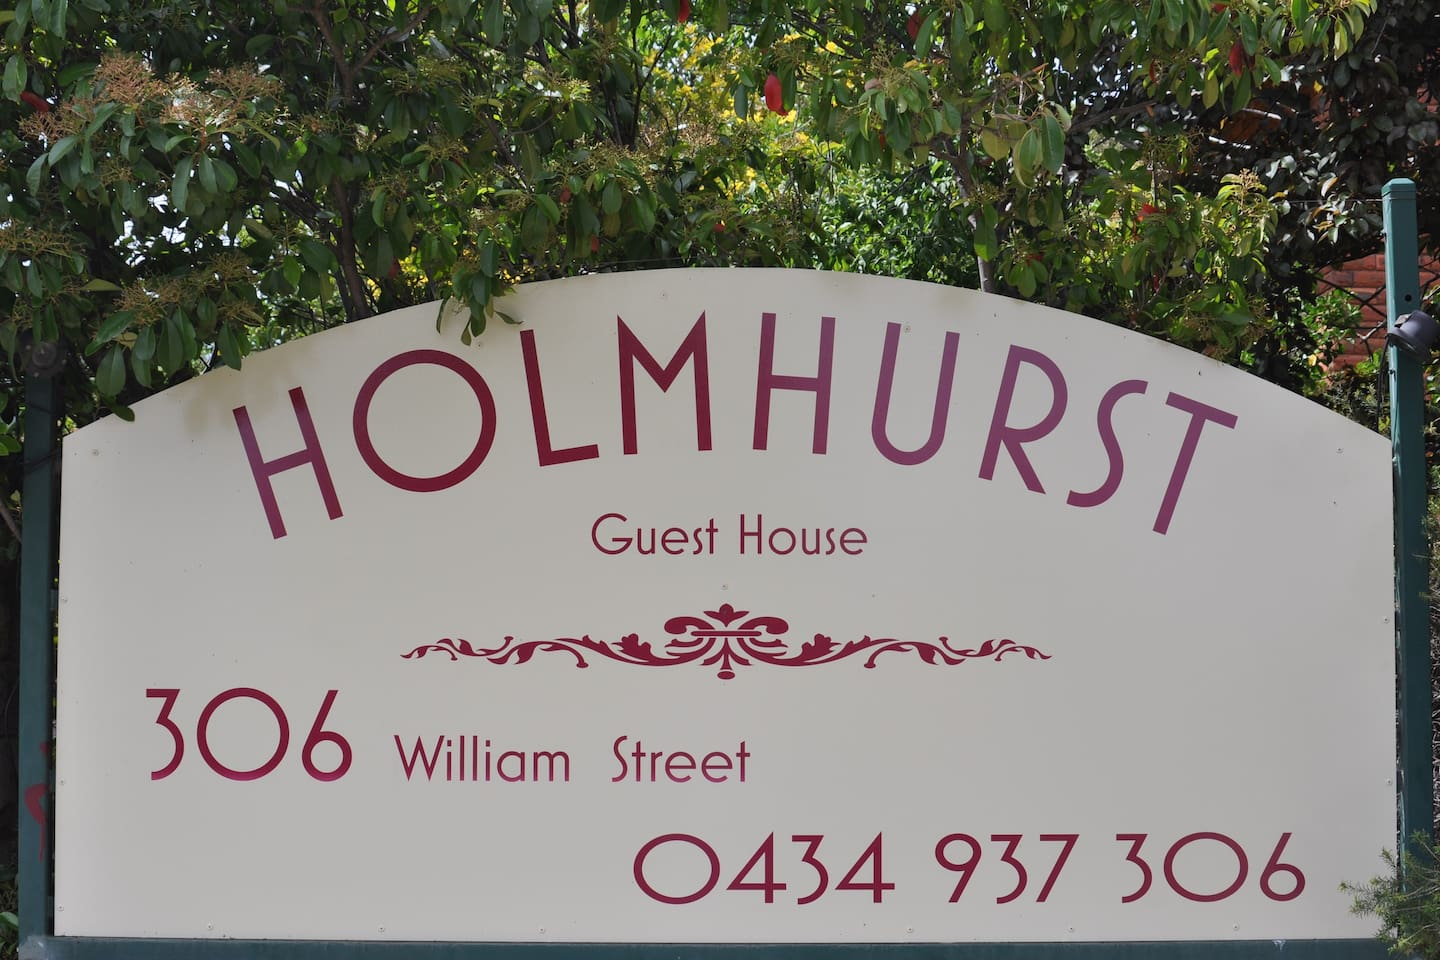 Welcome to Holmhurst Guest House